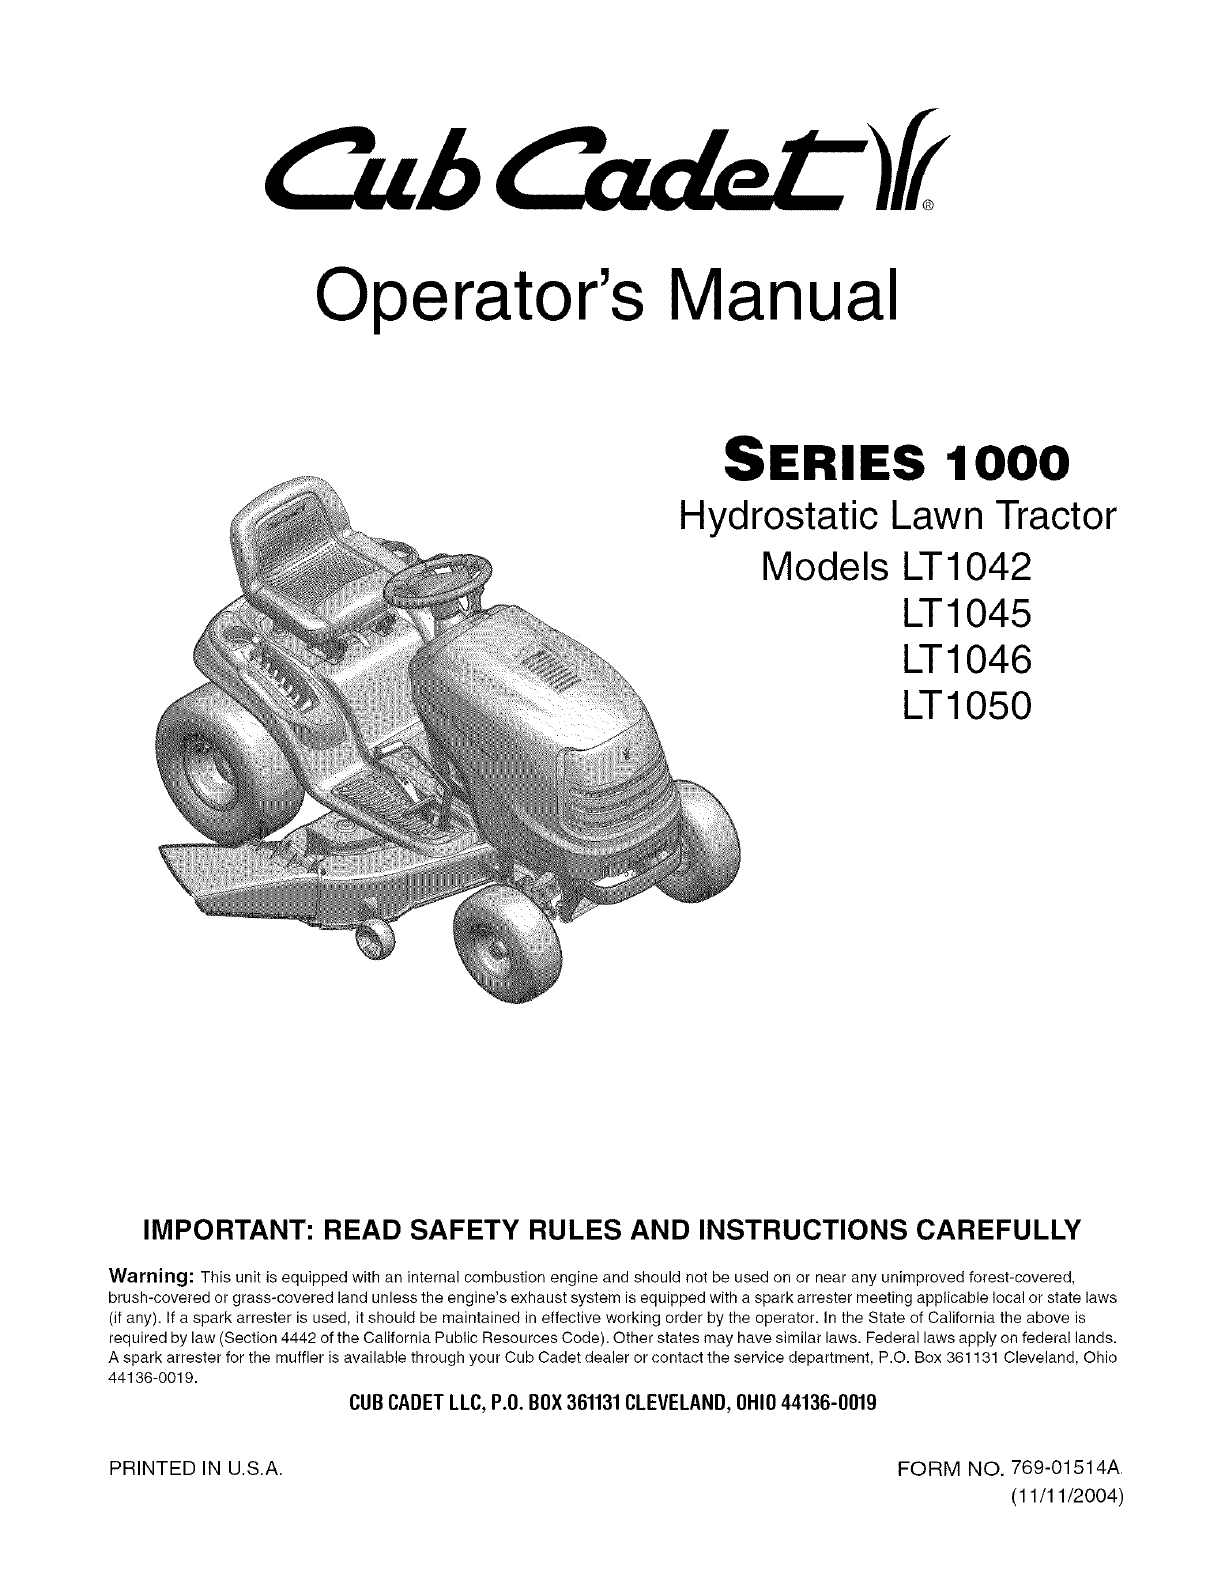 Cub Cadet Lawn Mower LT1050 User Guide | ManualsOnline.com